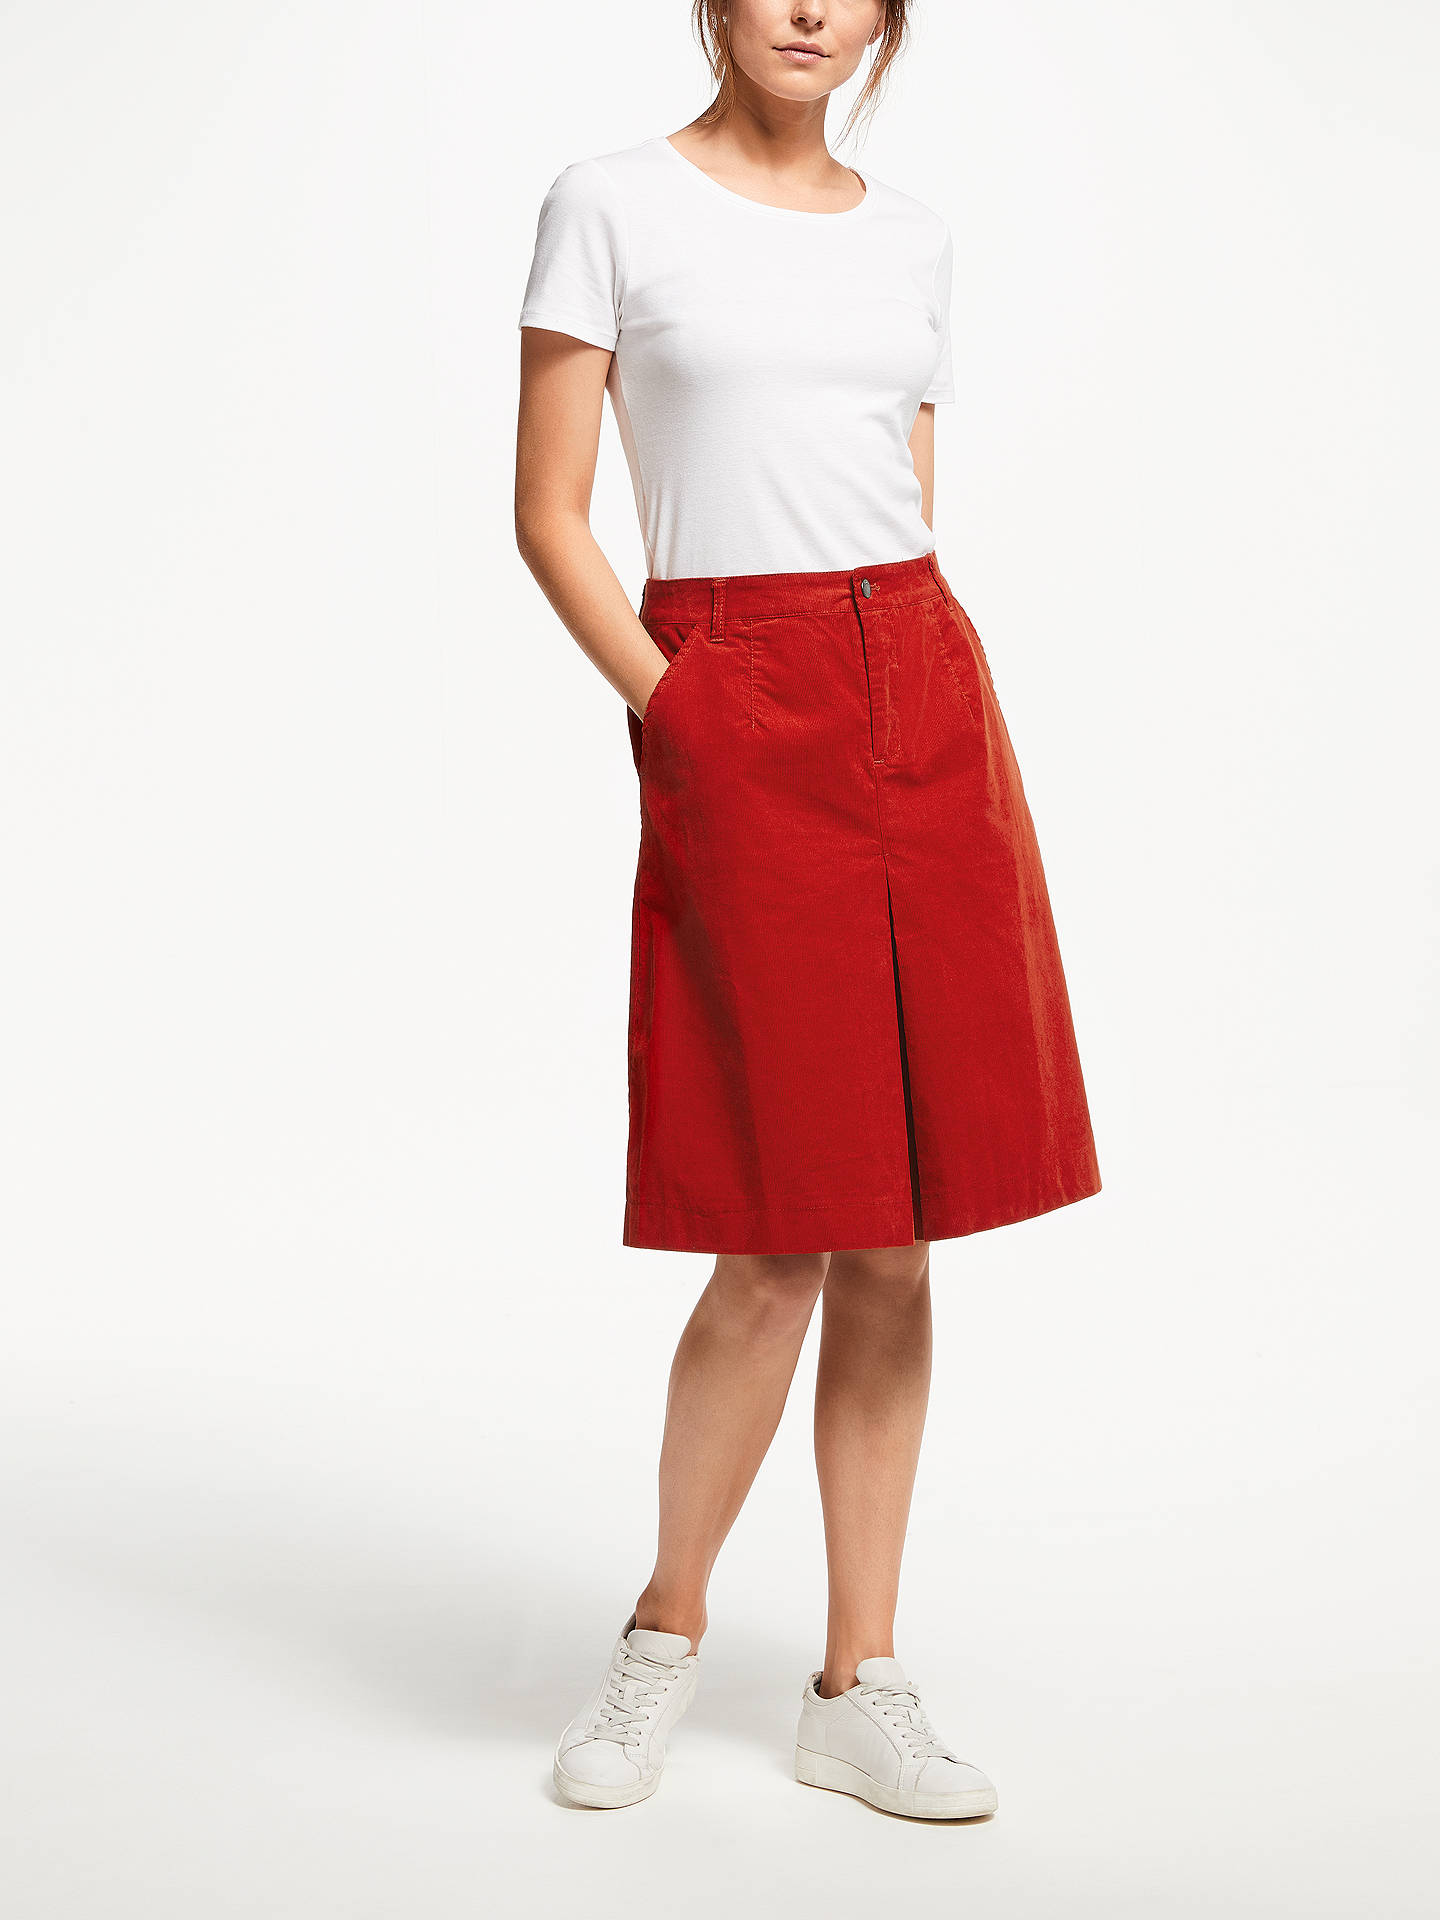 BuyThought Rubina Cord Skirt, Fox Red, 12 Online at johnlewis.com